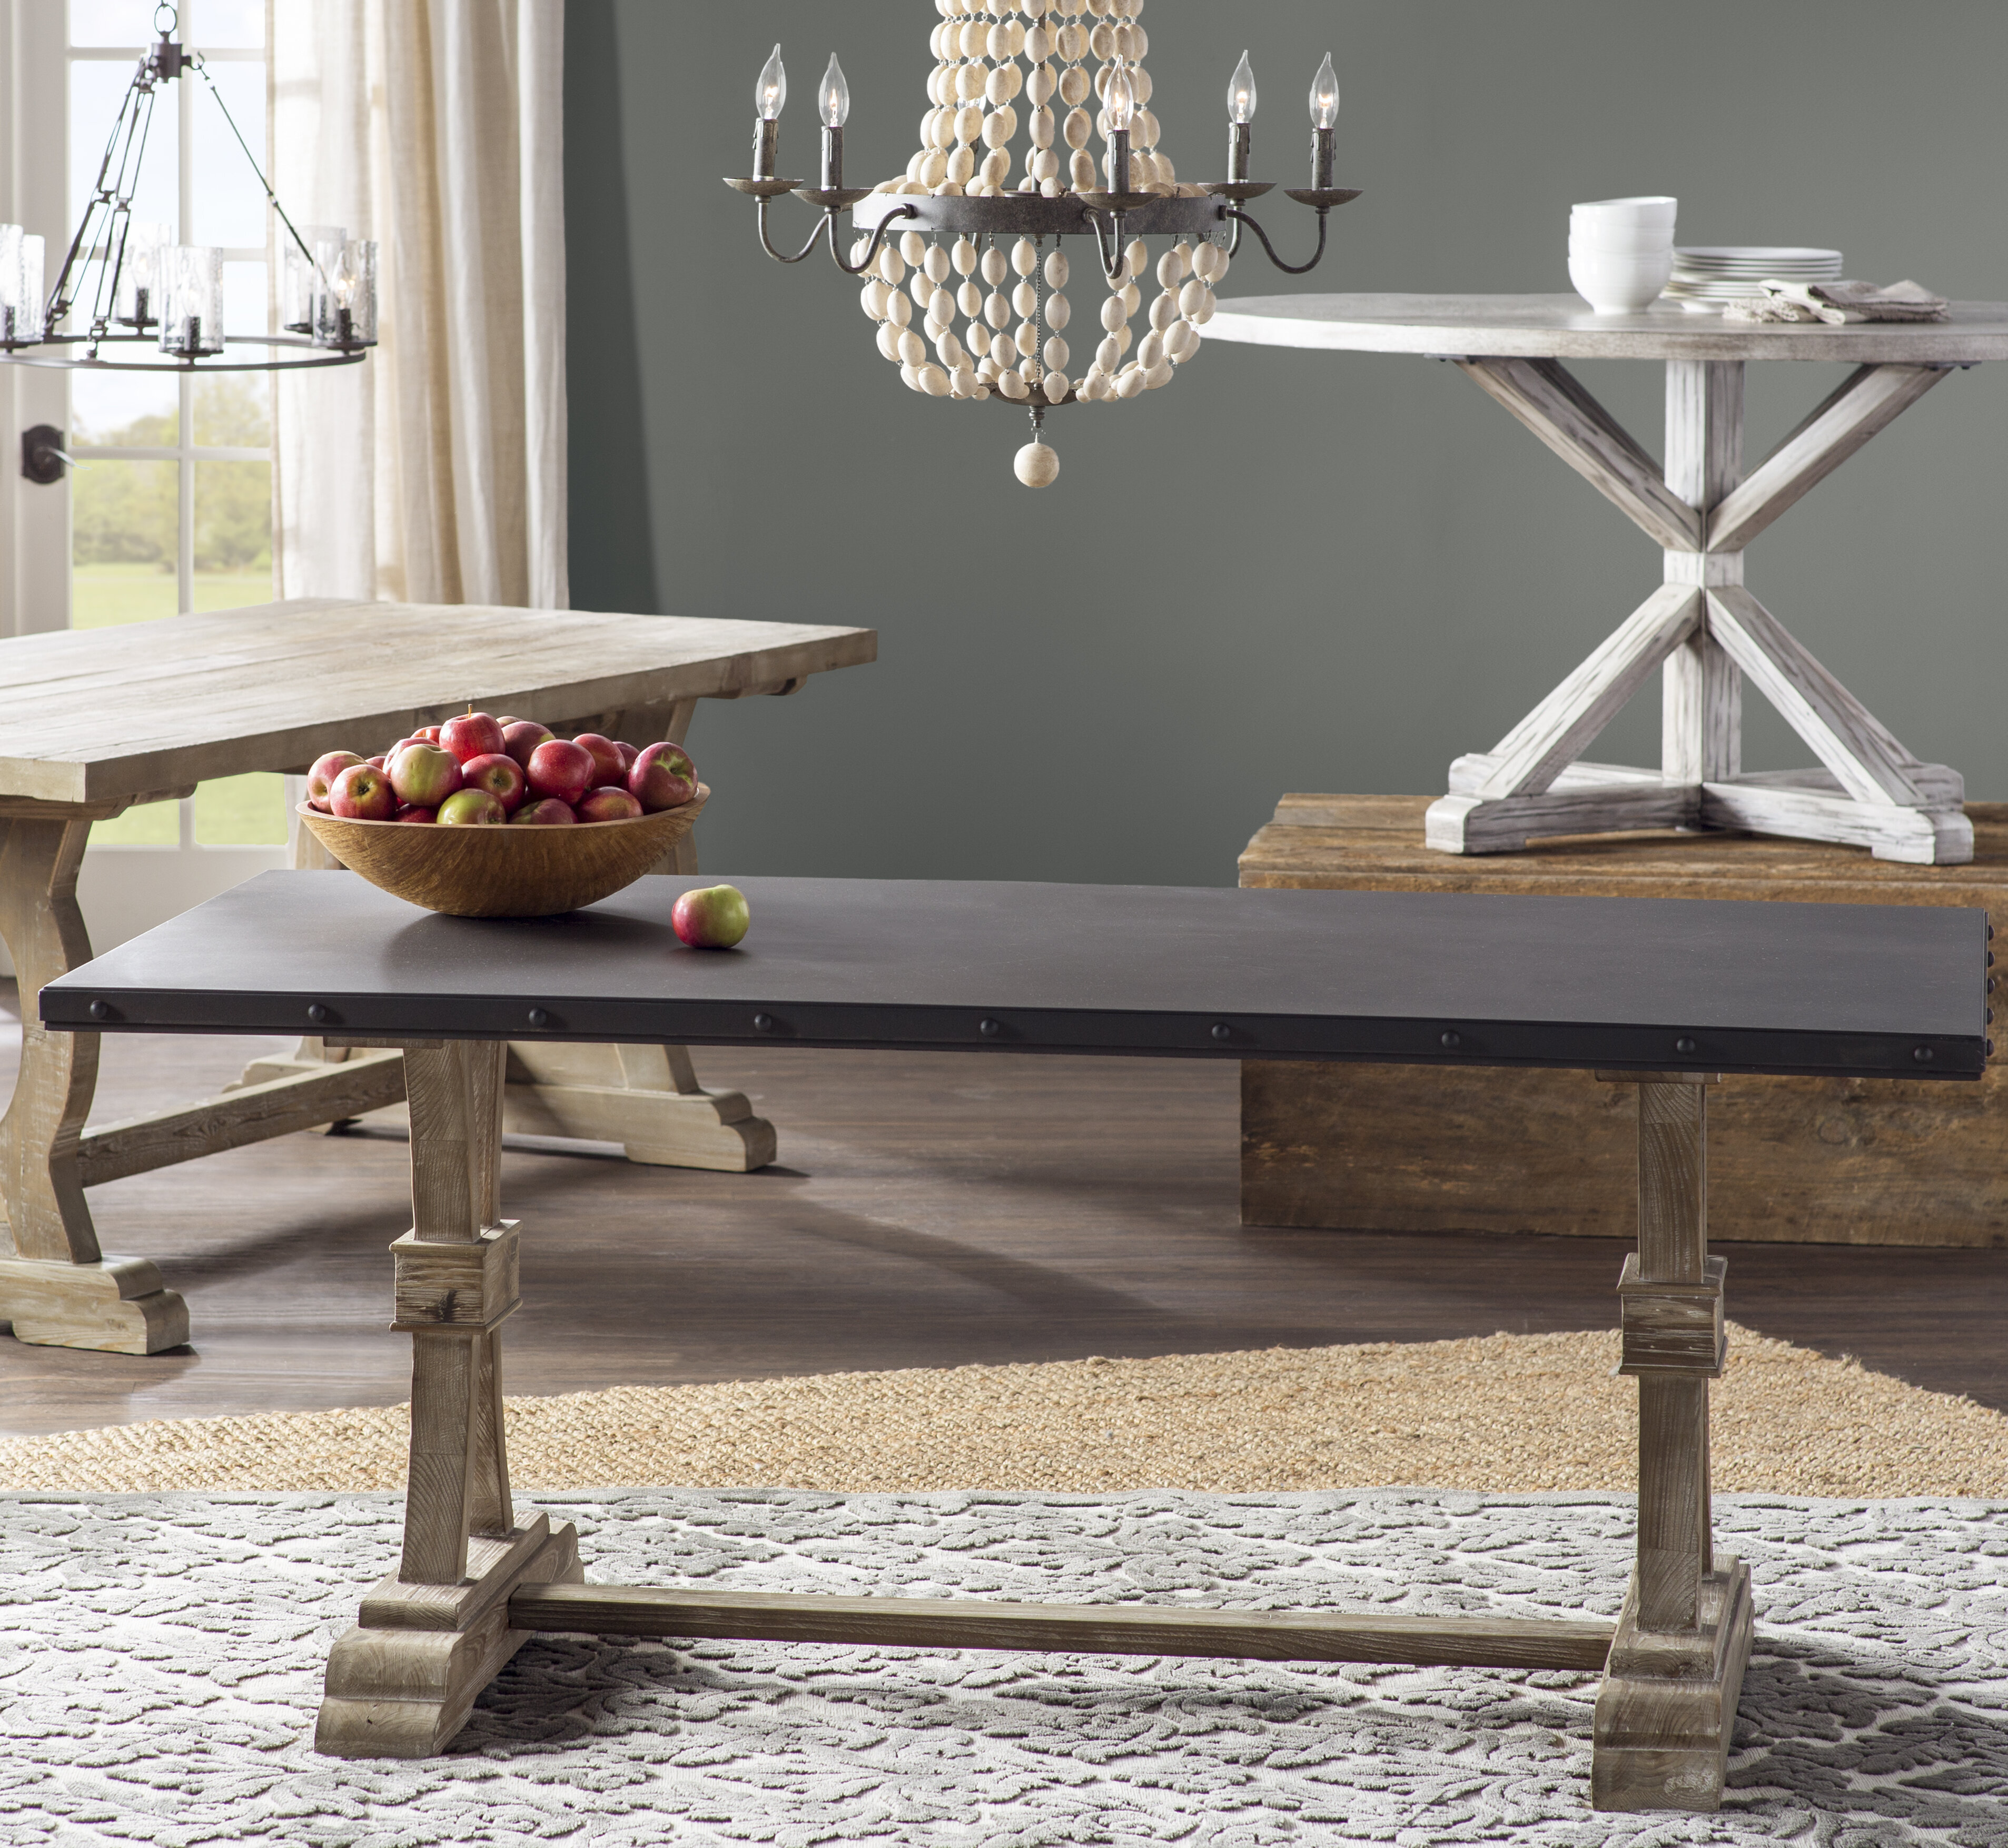 27410c6a5ca6 Laurel Foundry Modern Farmhouse Christina Dining Table   Reviews ...